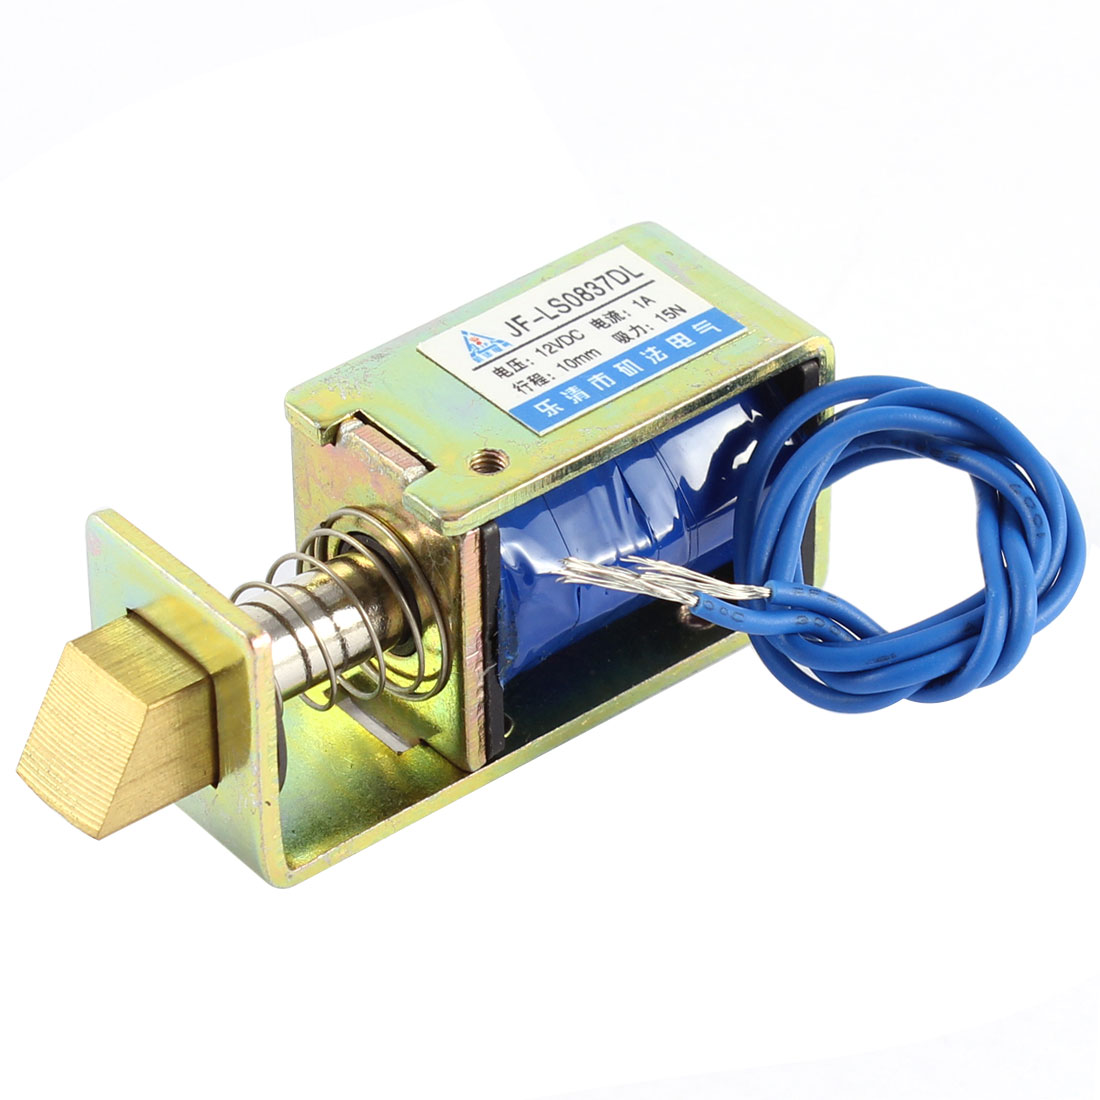 UXCELL Jf-Ls0837dl 12V 1A 10Mm 15N Pull Type Open Frame Electromagnet Solenoid For Door Lock Vending Machines Office Facility цена